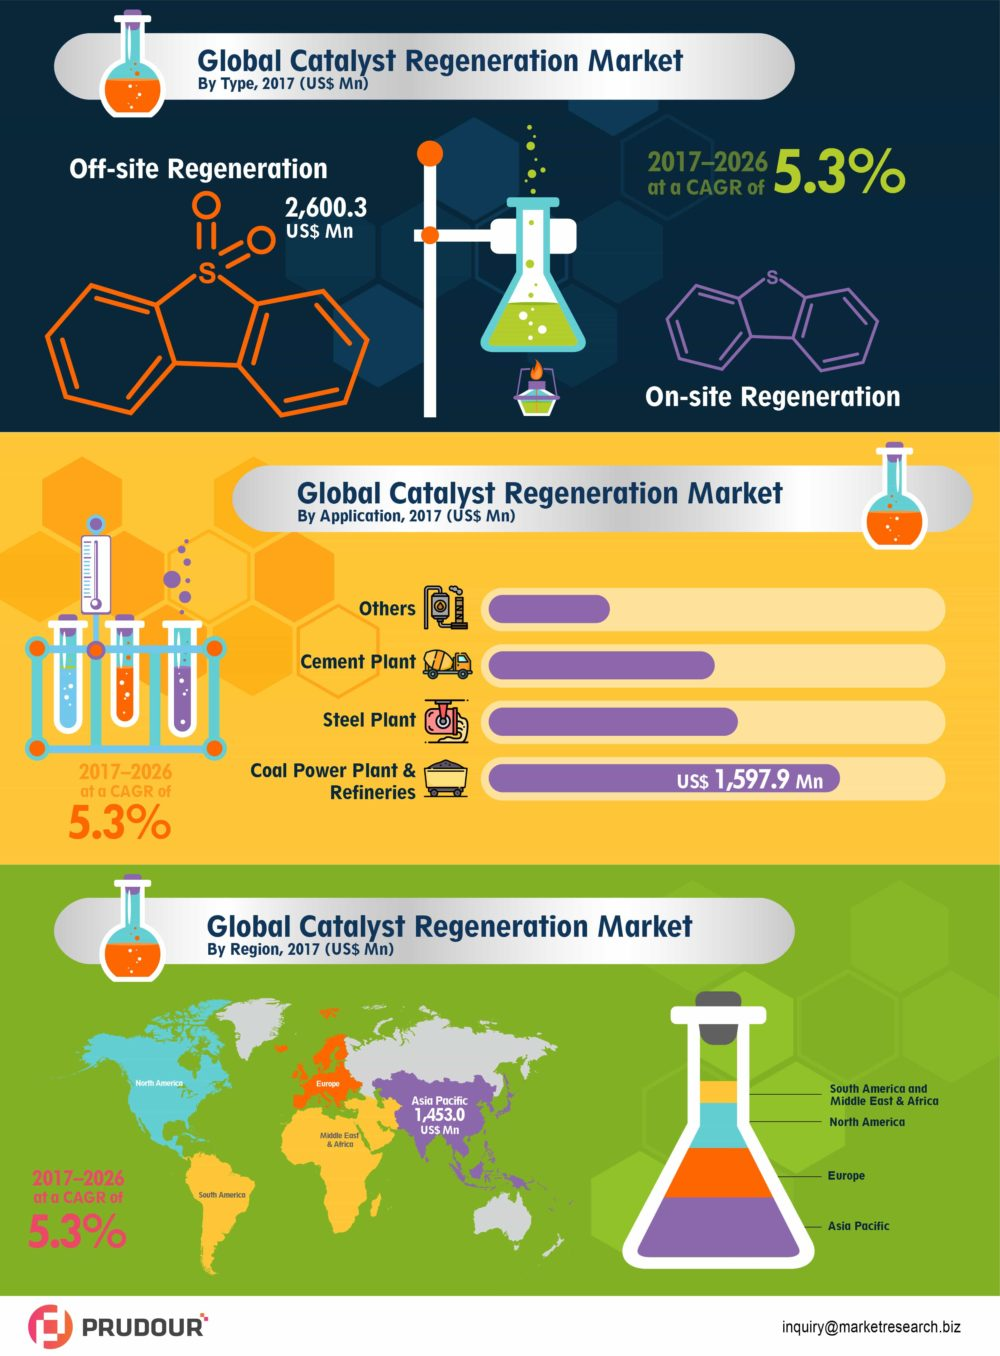 Exhibit CAGR Of 5.3%: Catalyst Regeneration Market About To Exhibit CAGR Of 5.3% from 2017 To 2026